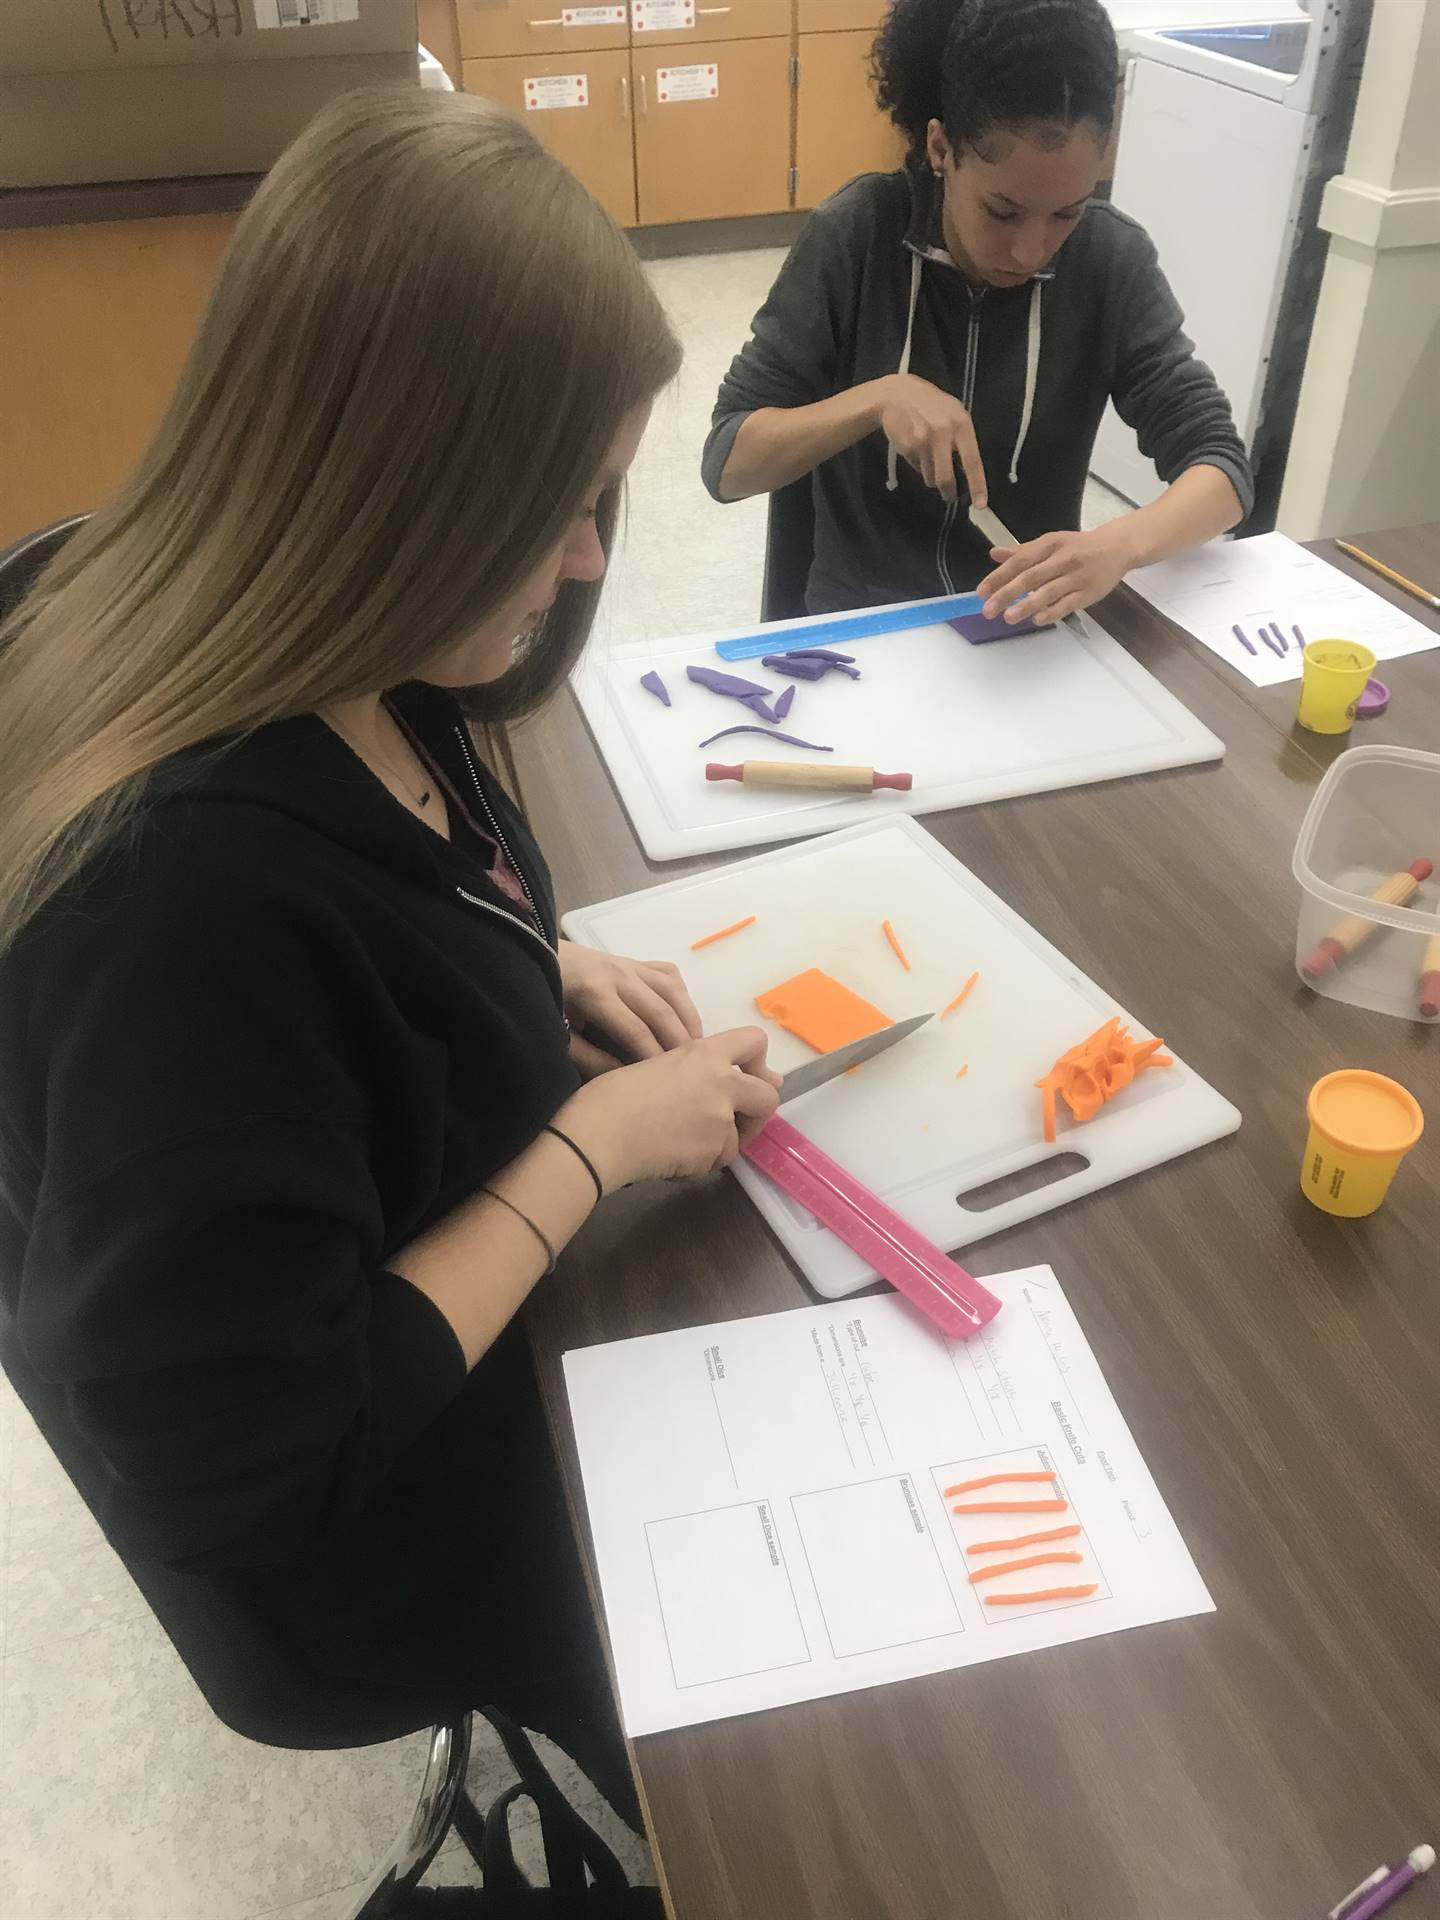 students cutting play dough with knives